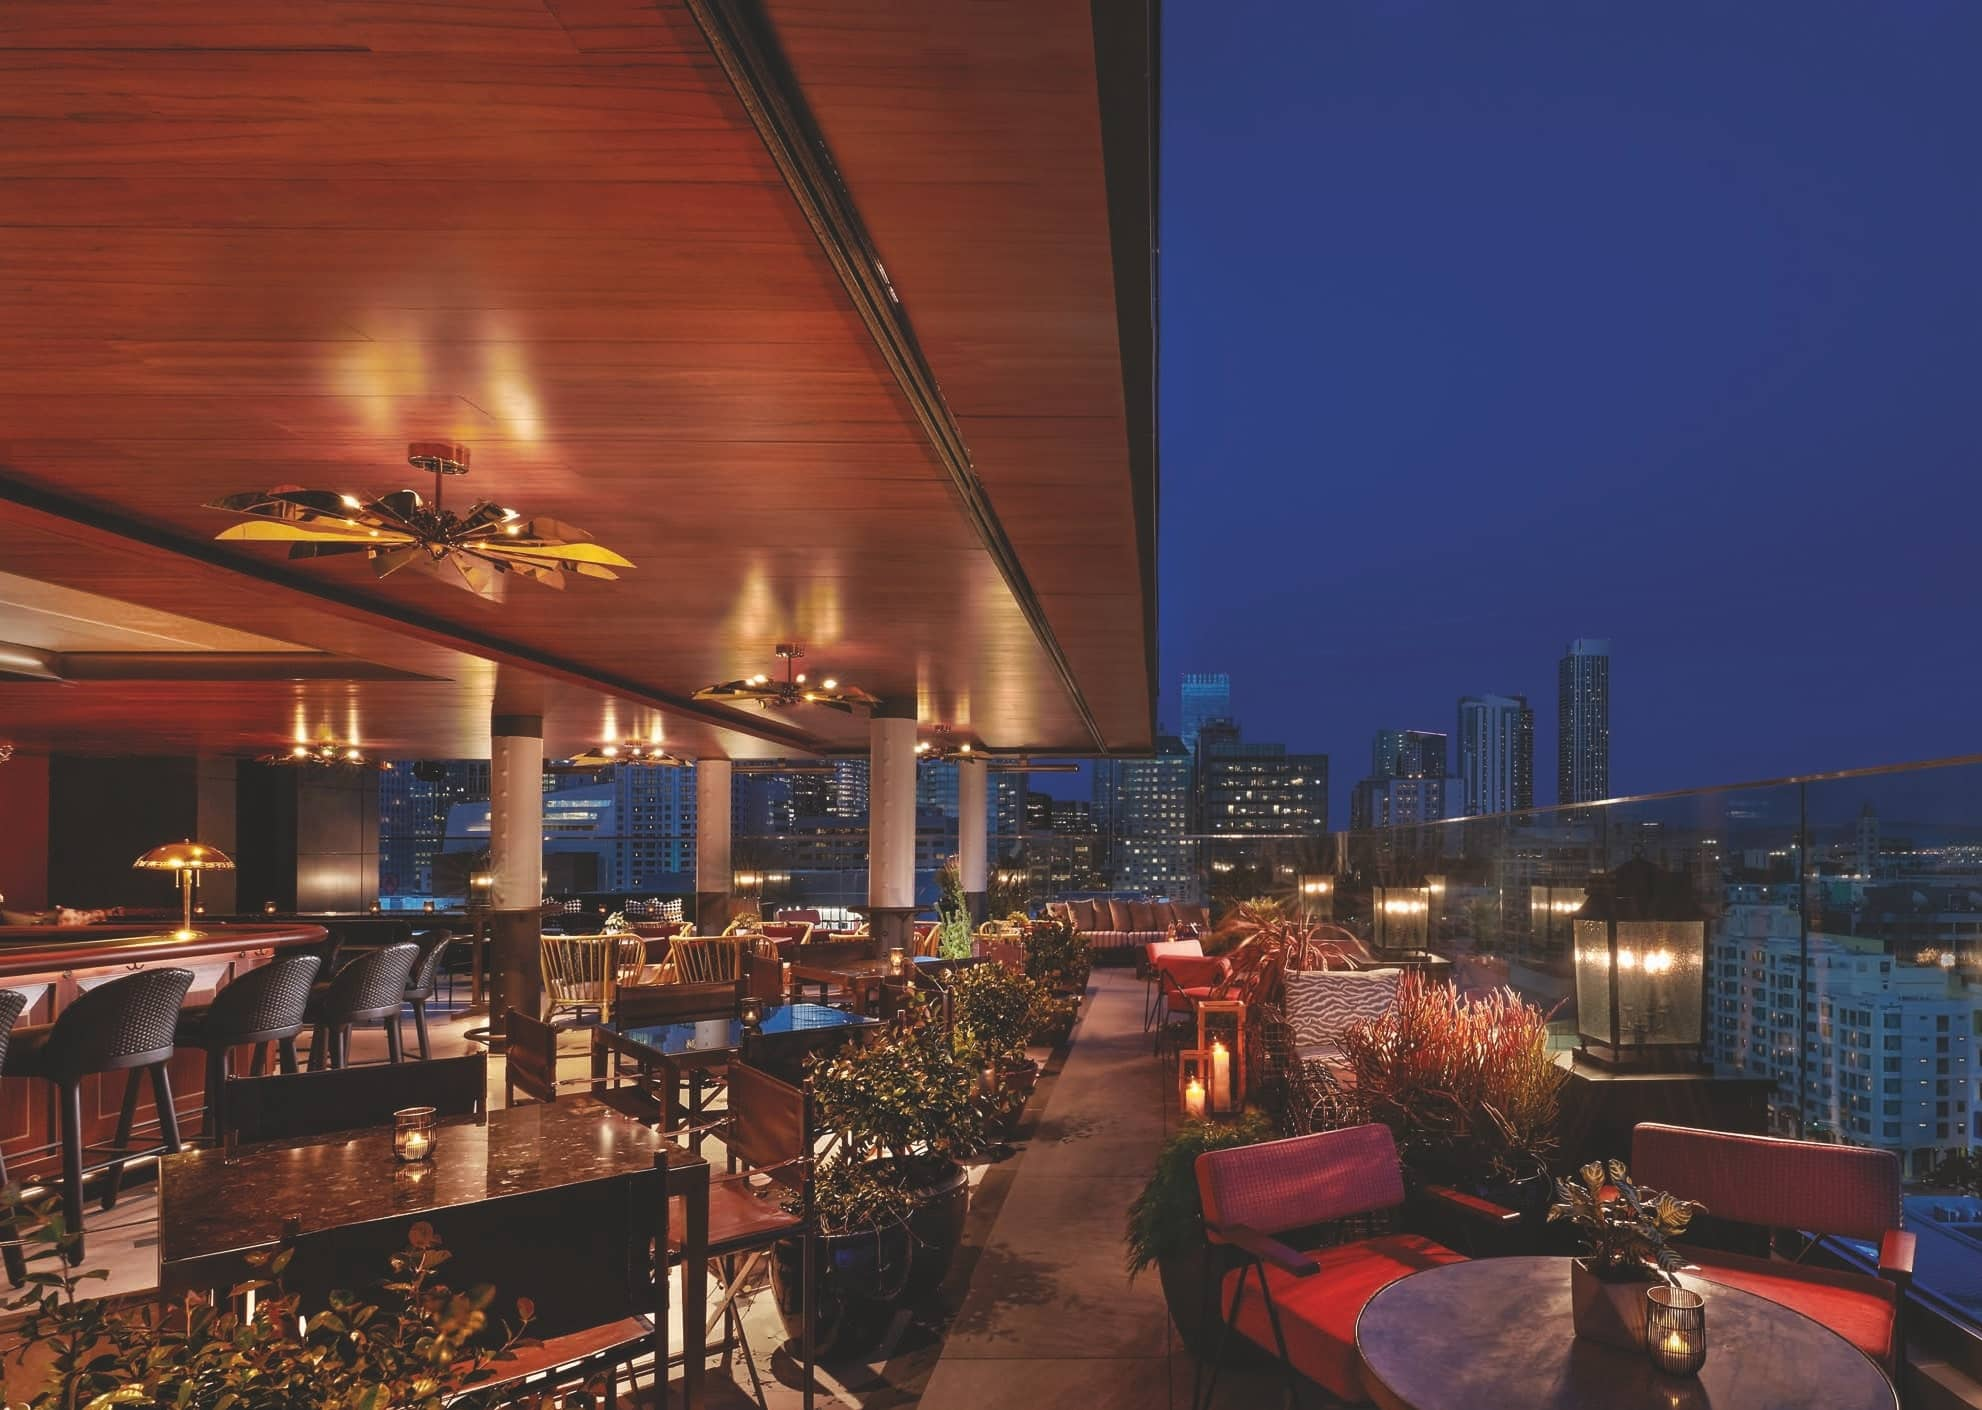 10 Dining Patios For San Francisco's Sunny Indian Summer